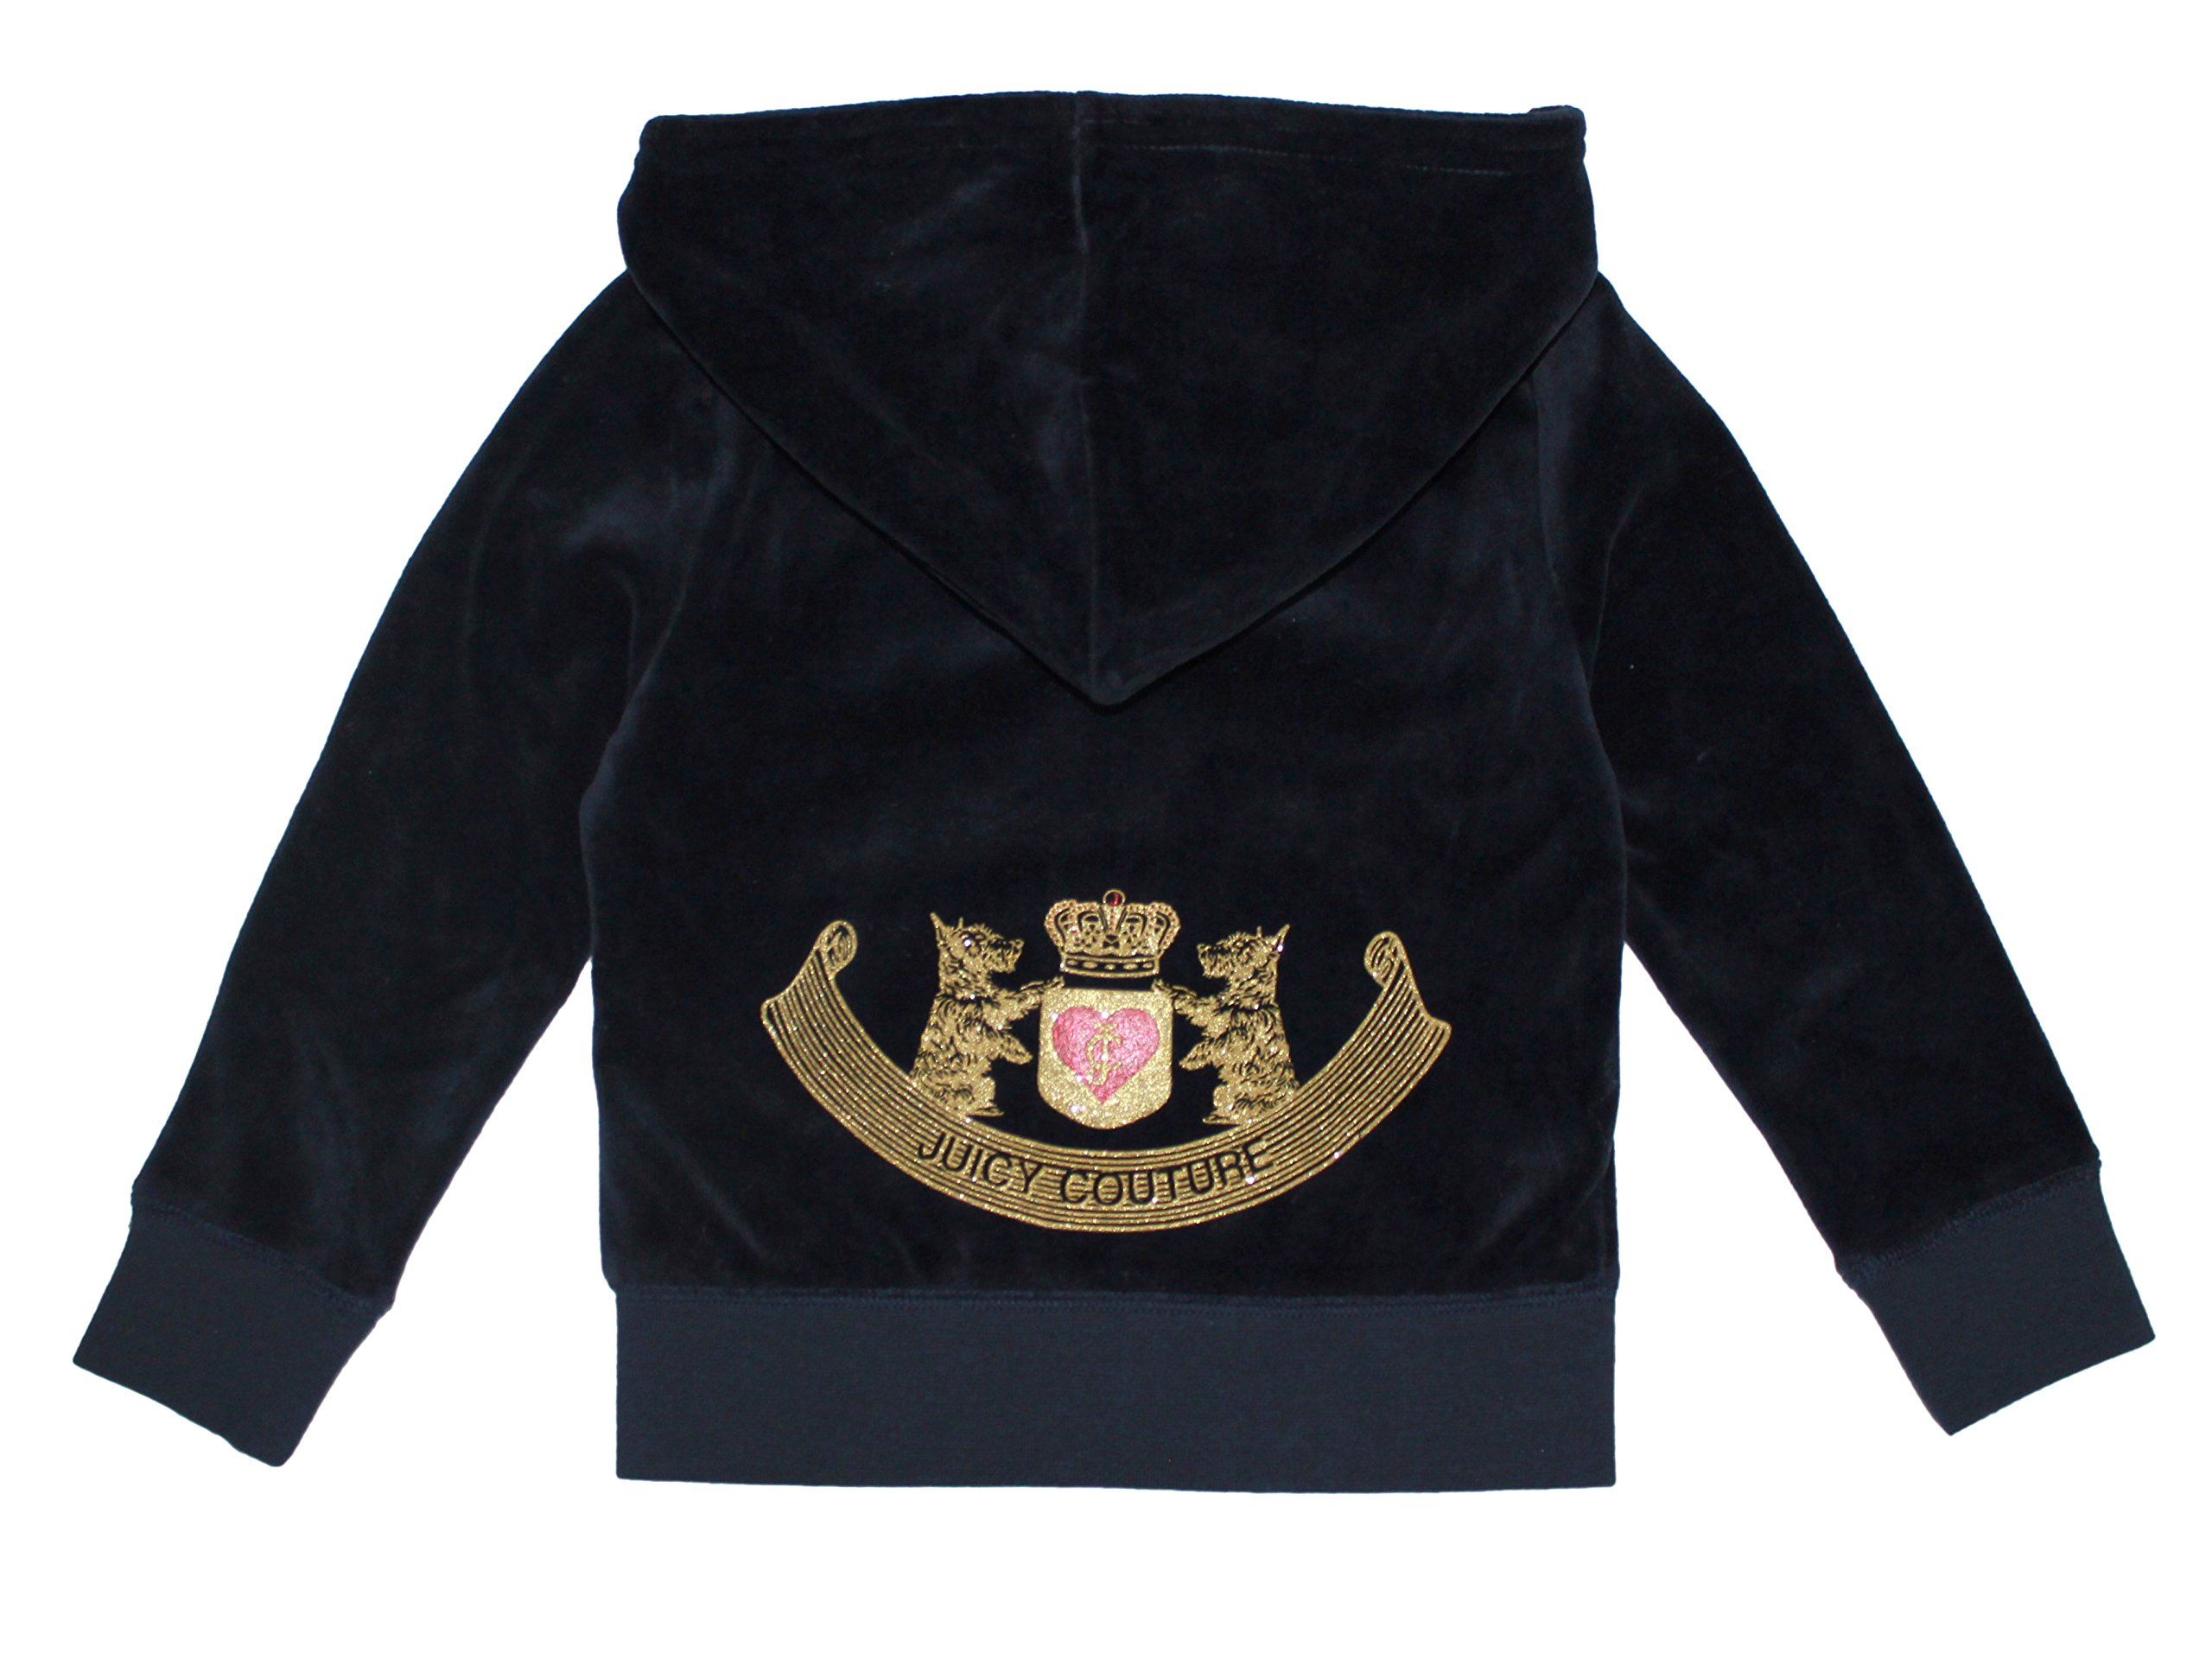 Juicy Couture Girls Hoodie With Gold 'JC' Monogram, Navy Blue (Small (4-5)) by Juicy Couture